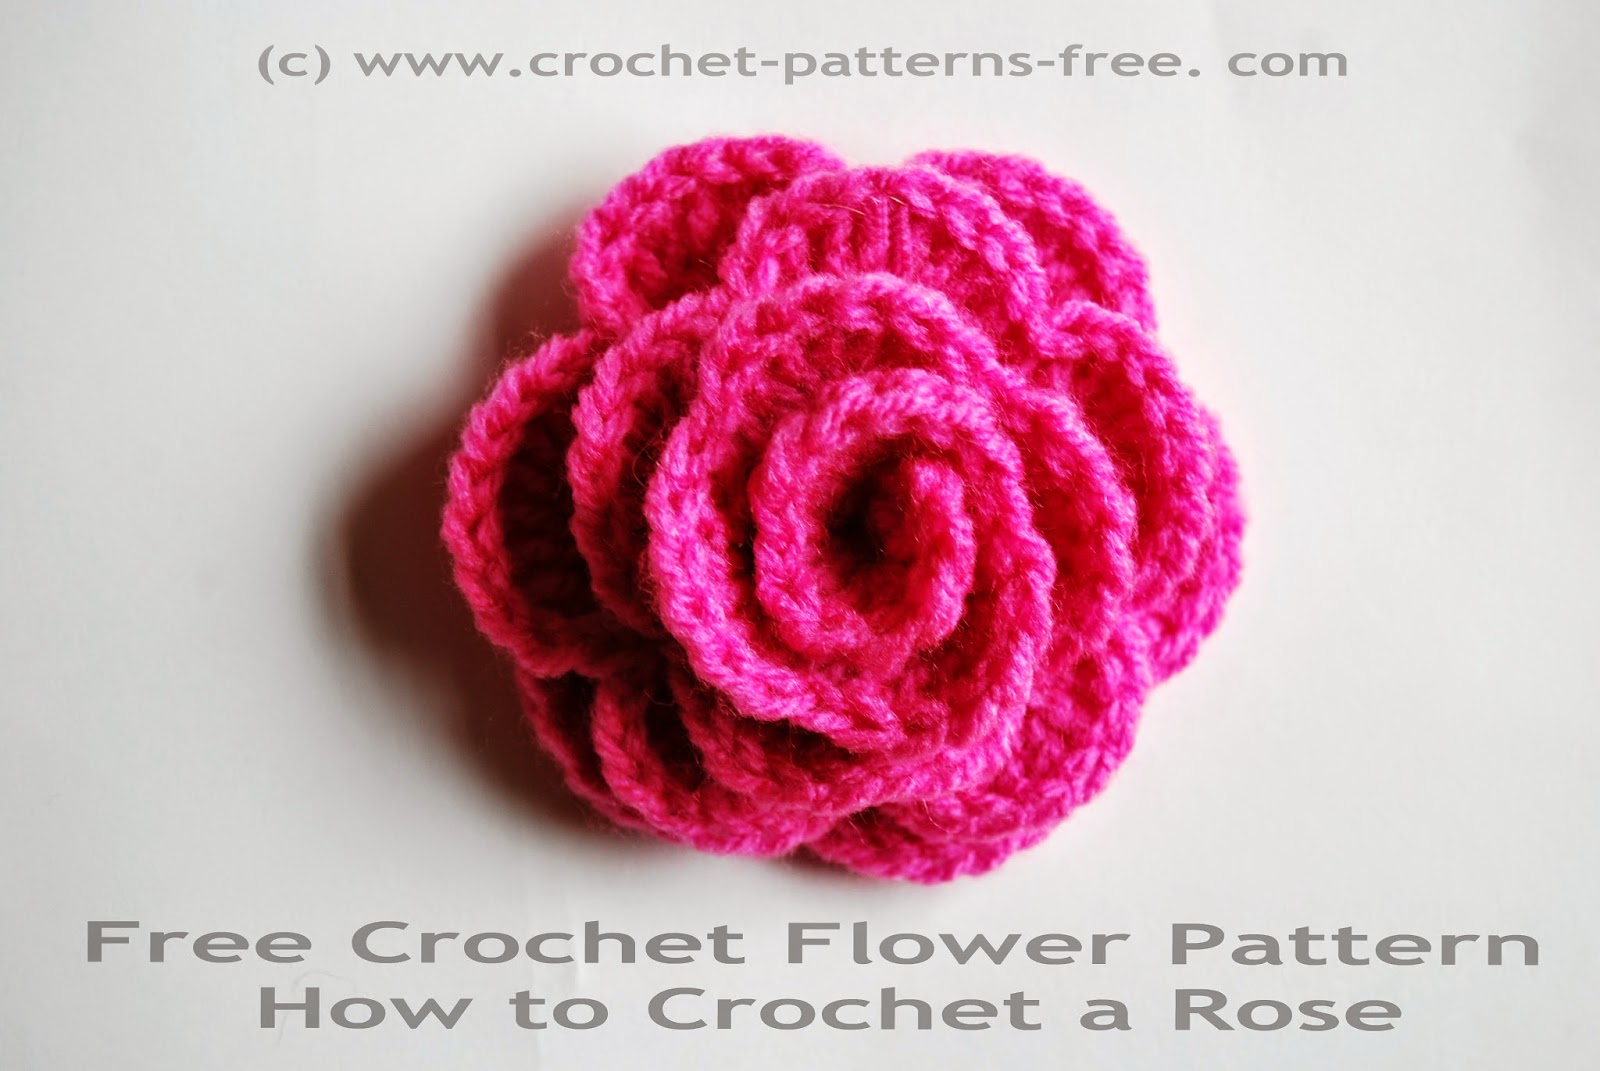 Free crochet flower pattern how to crochet a rose free crochet free crochet flower patters bankloansurffo Image collections